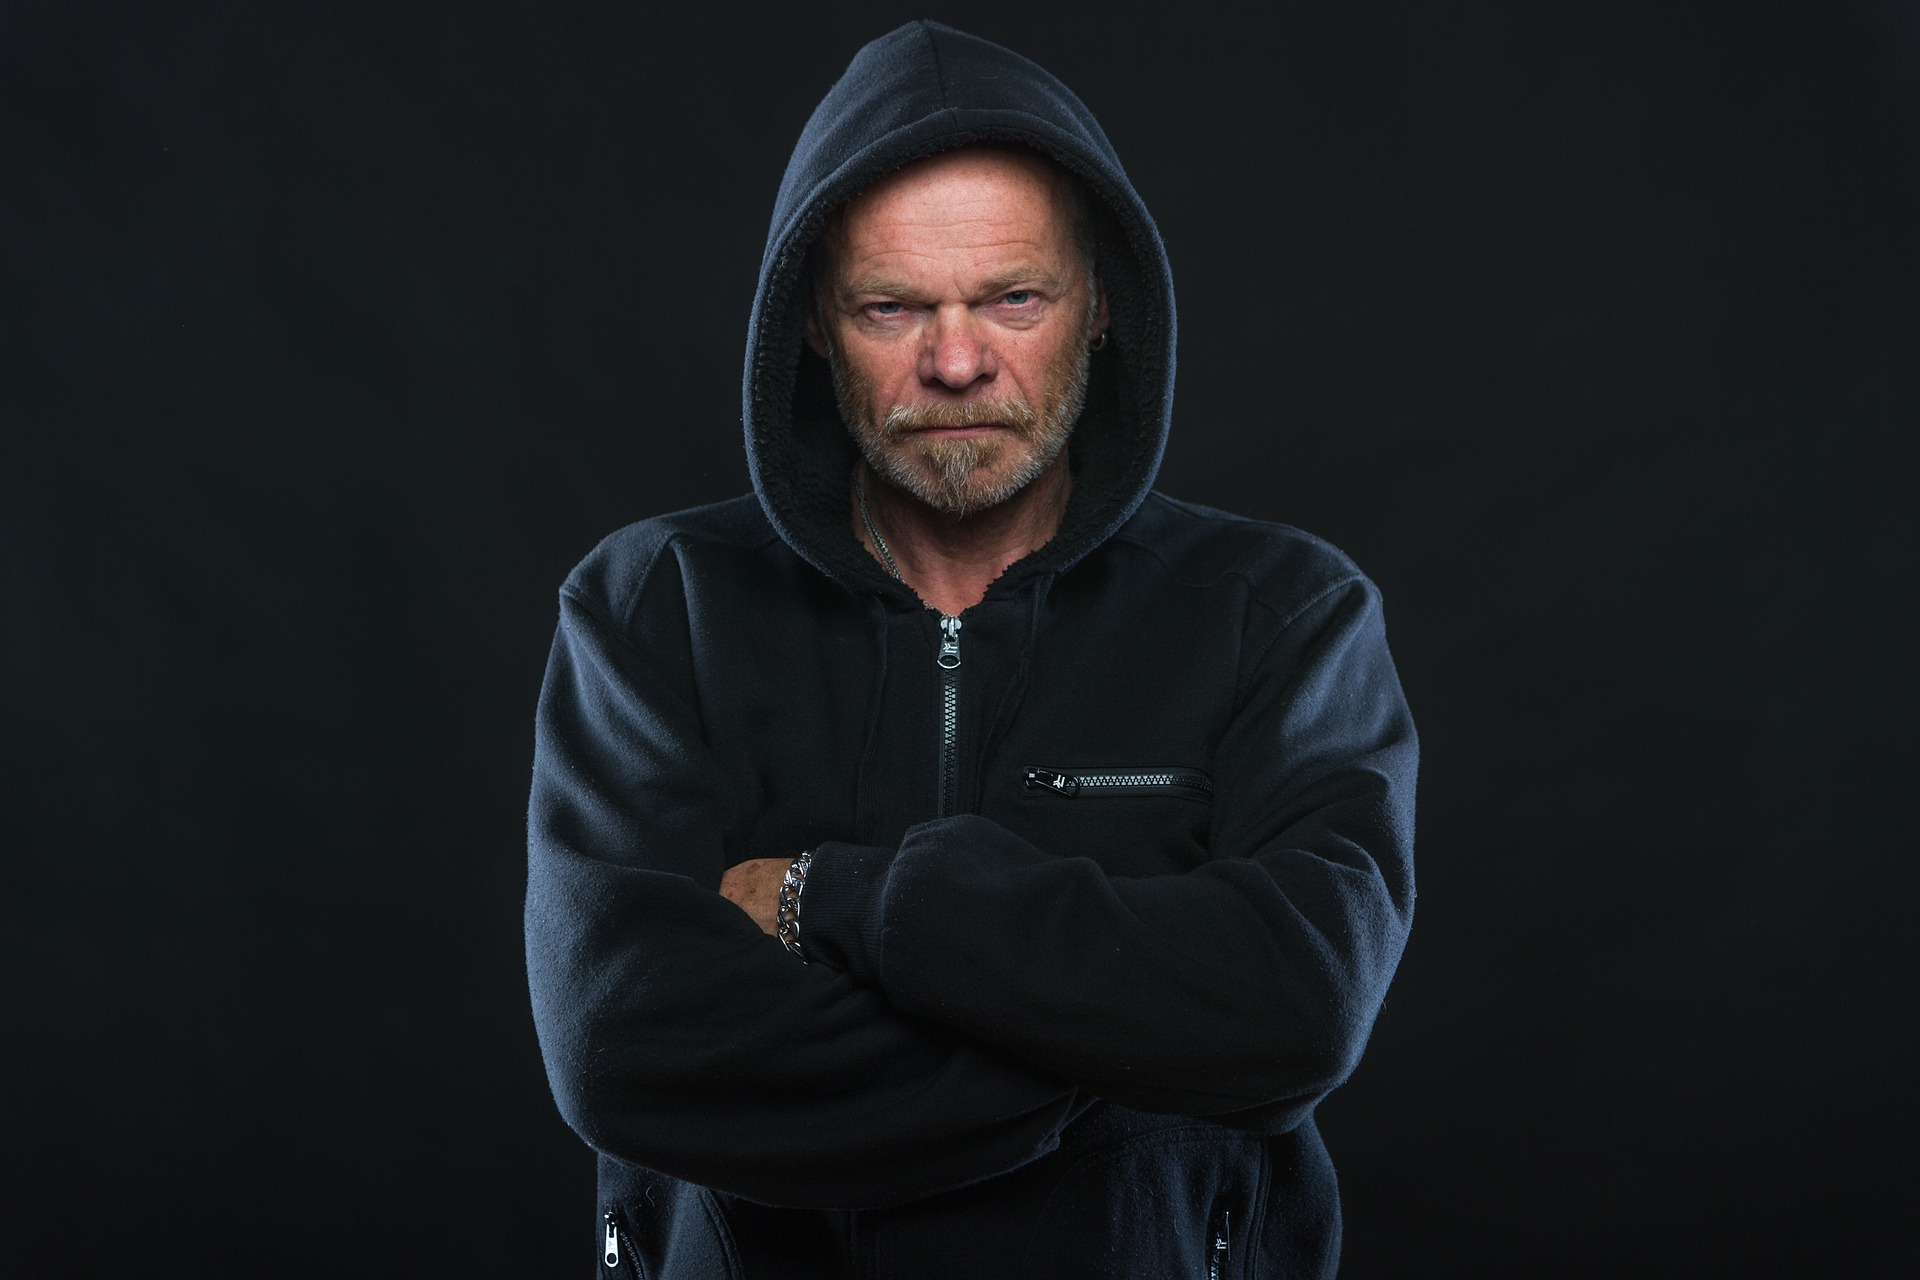 Angry man in a hoodie